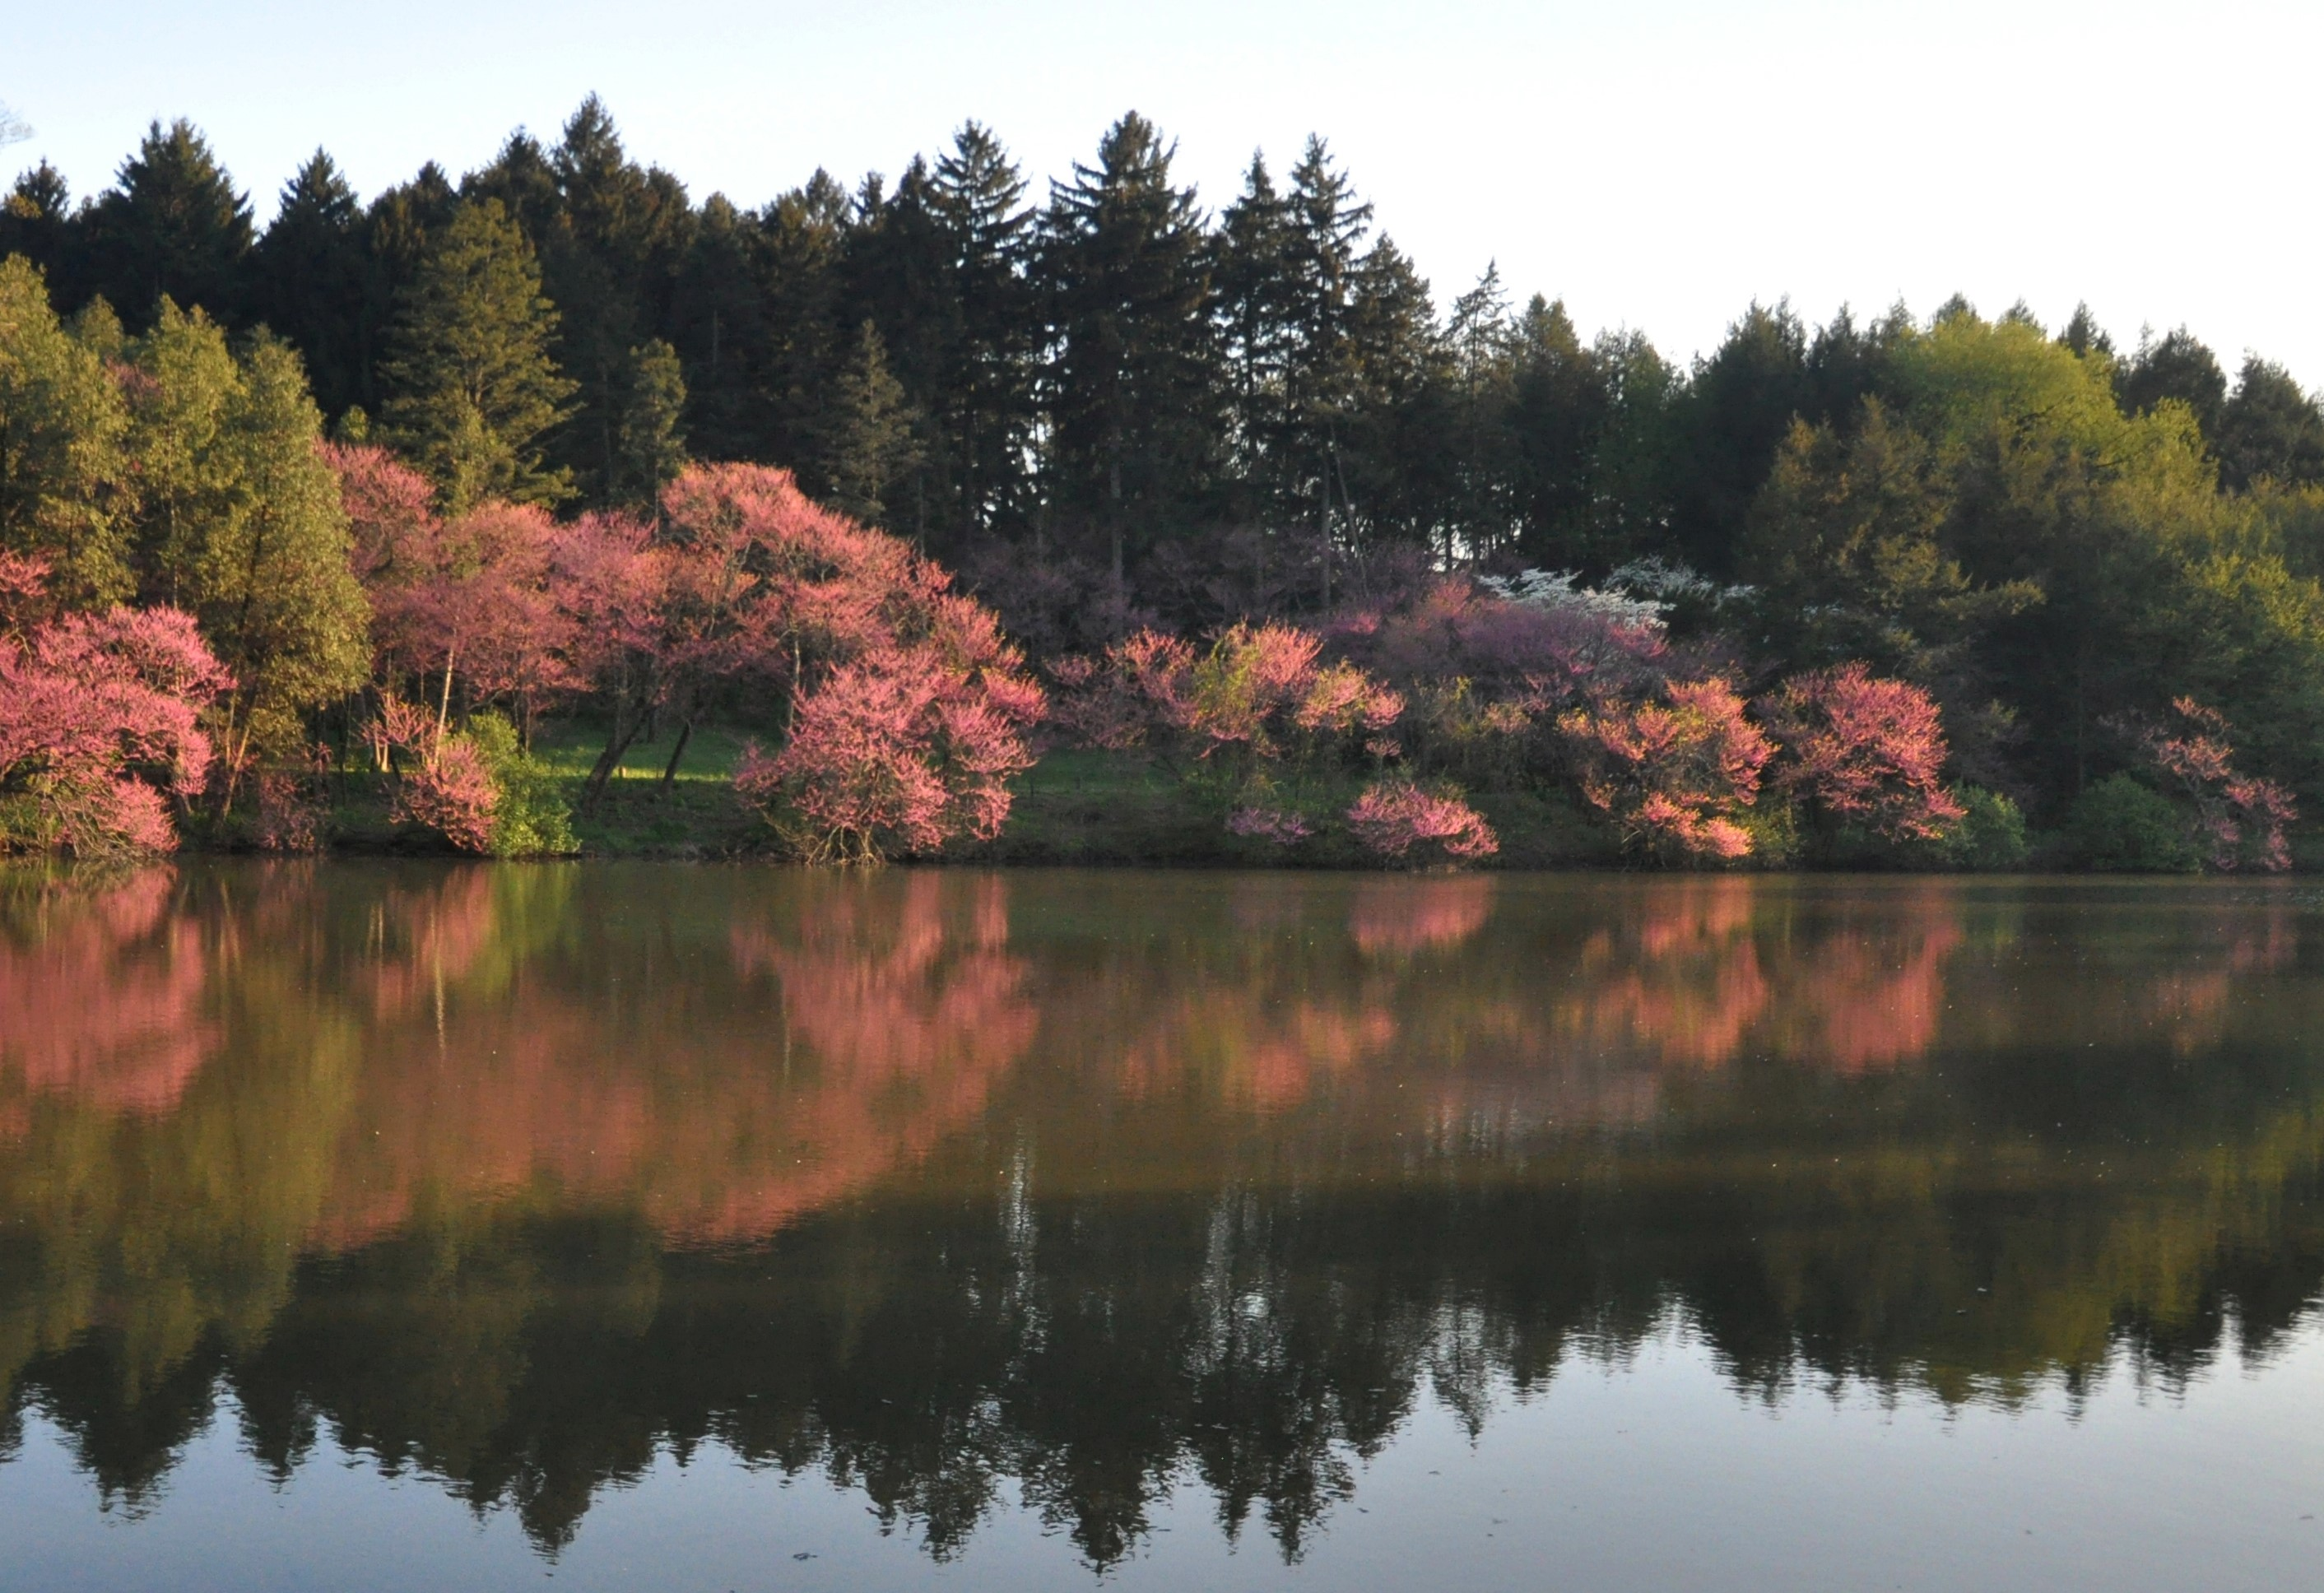 A family walks through fall beauty at the arboretum